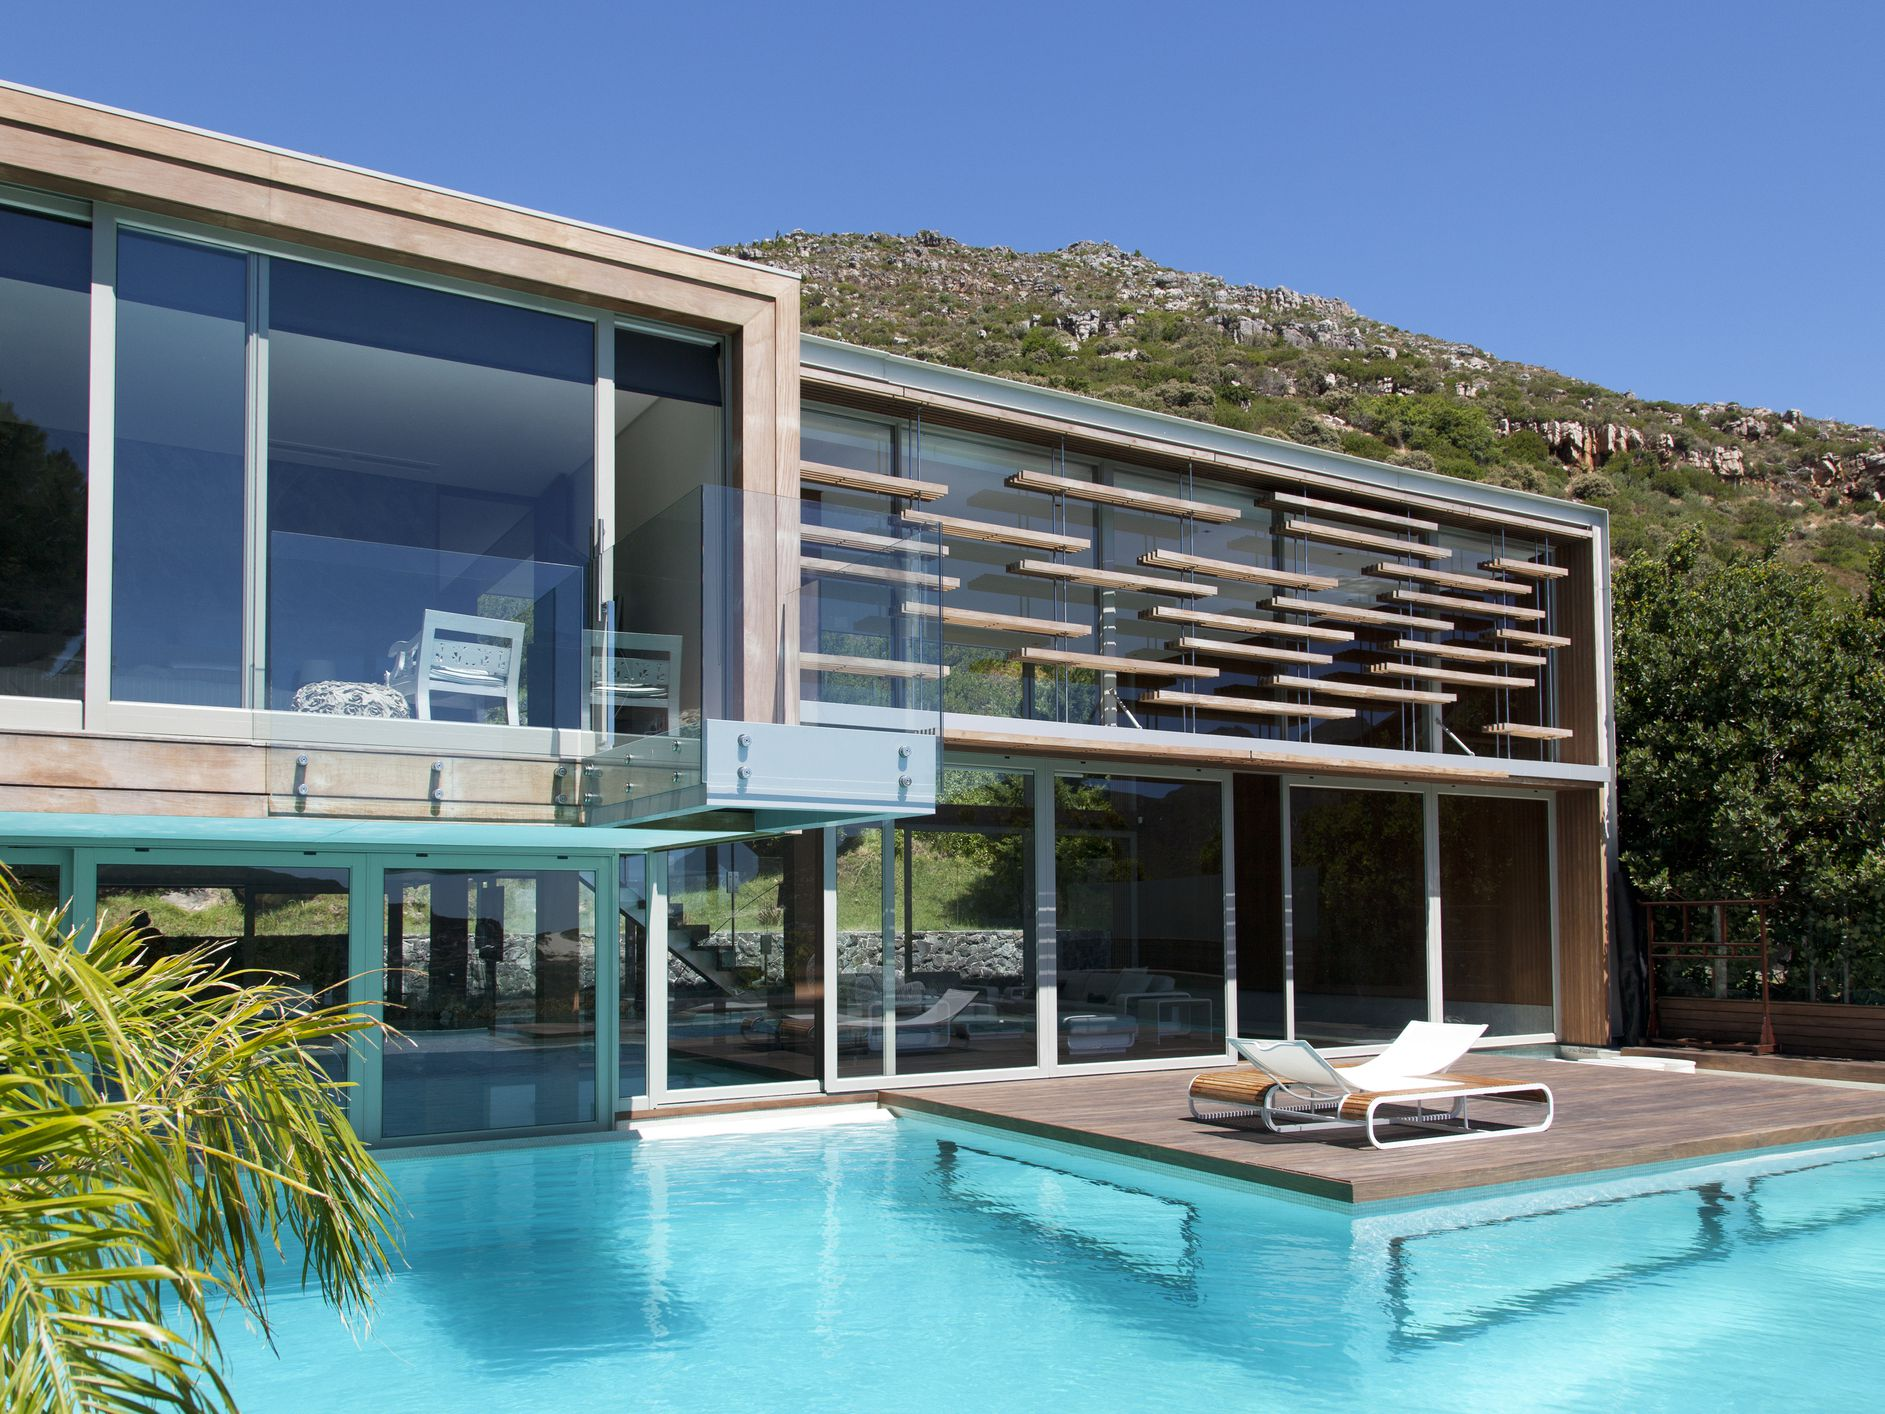 25 Beautiful Modern Swimming Pool Designs